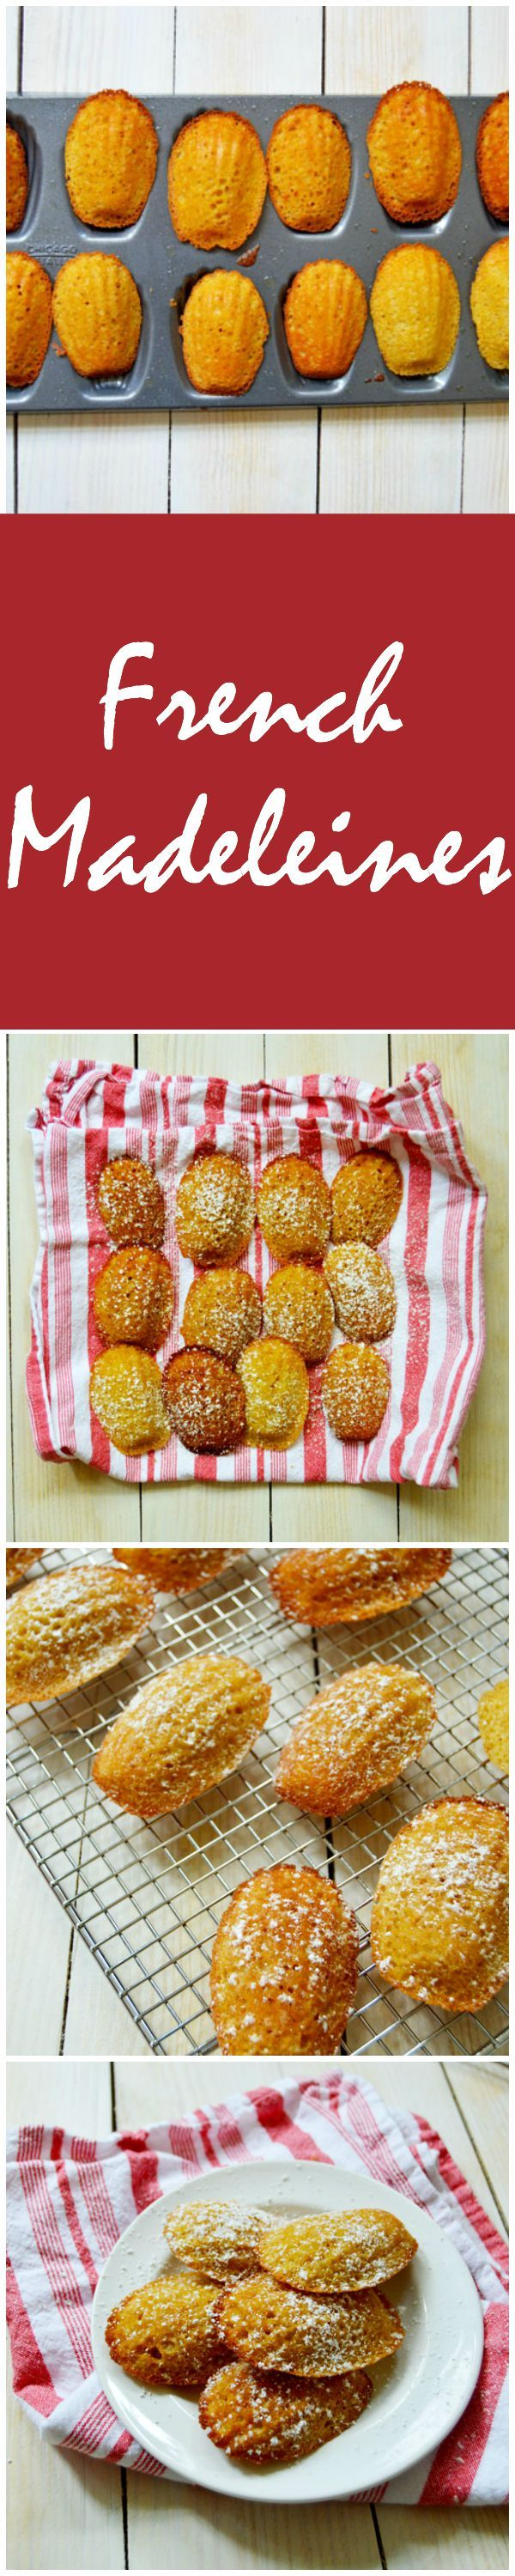 Classic French Madeleines made with brown butter, lemon zest, vanilla and a touch of honey. Dust them with powdered sugar for the perfect treat. | TheHungryTravelerBlog.com